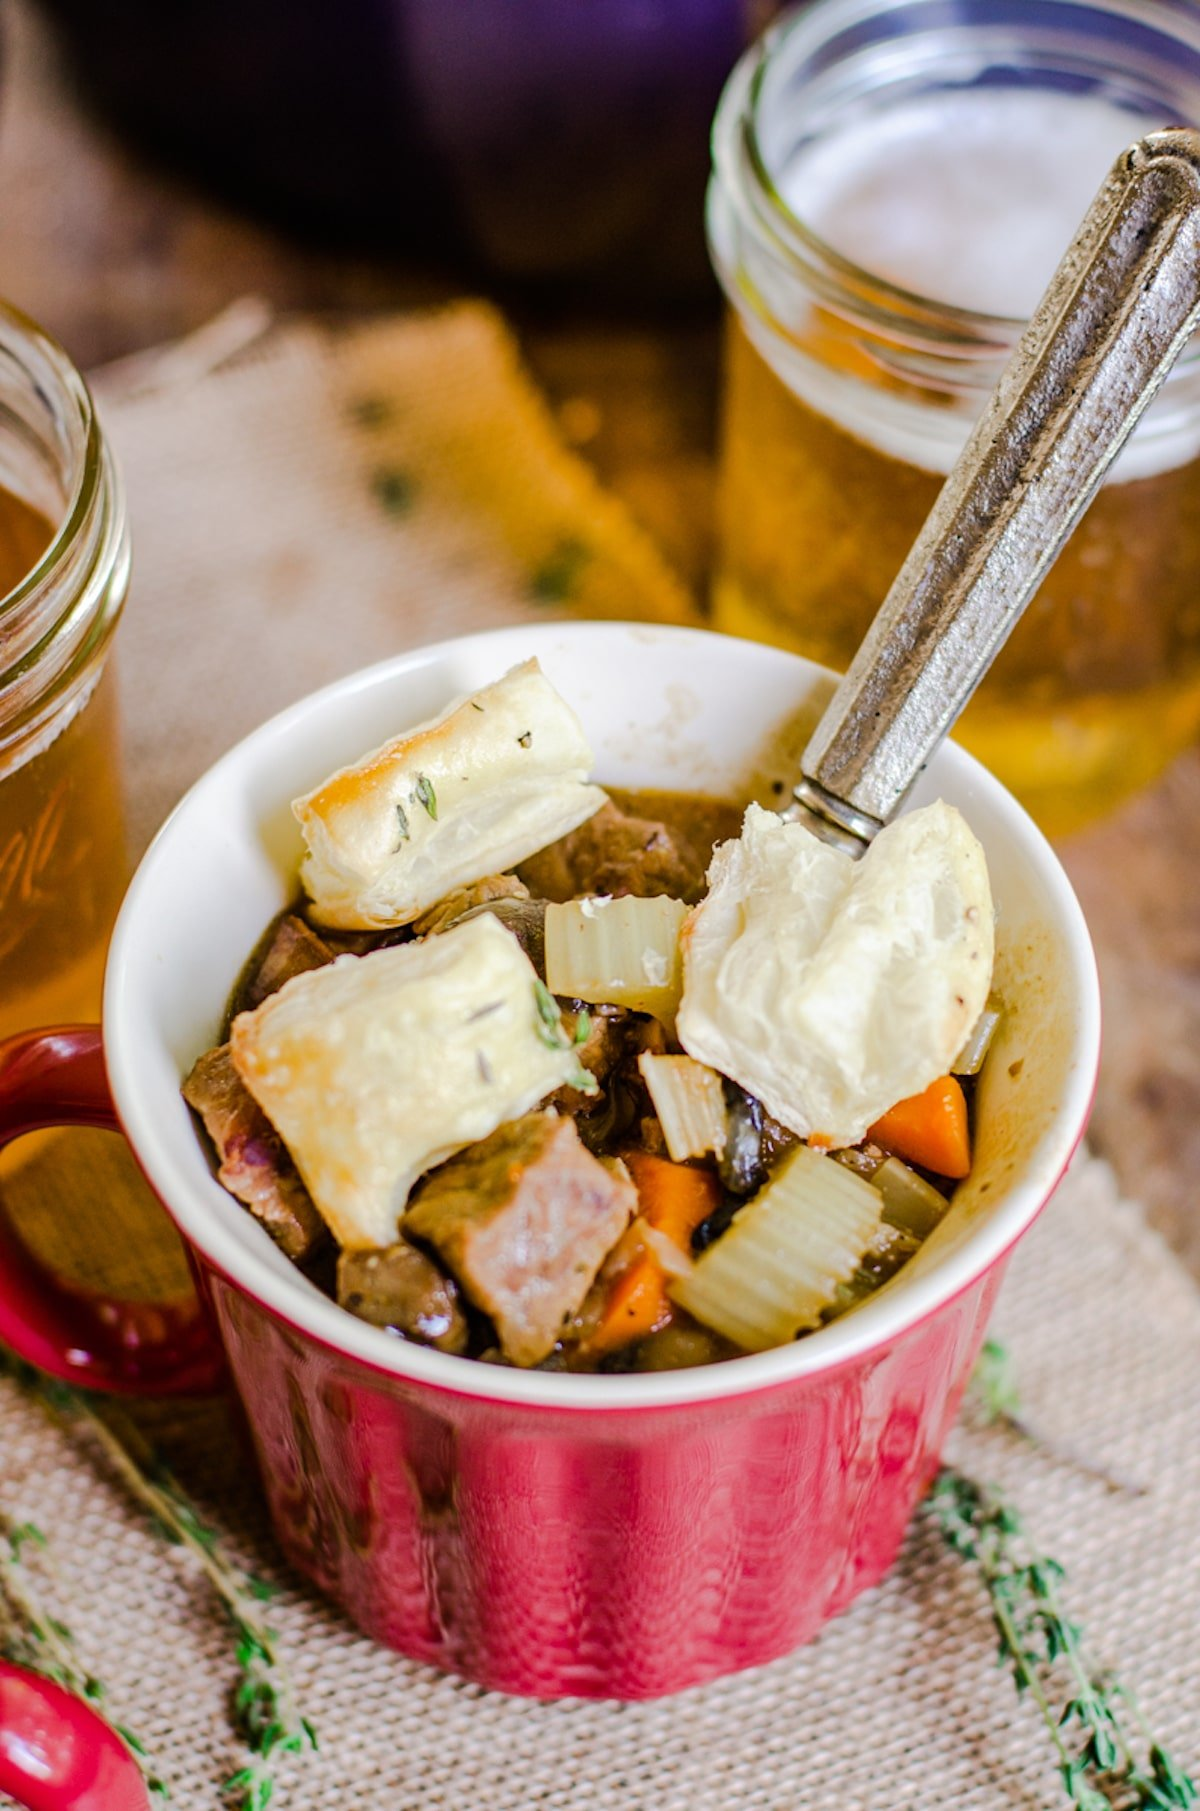 Inside of a mug of soup with puff pastry croutons.